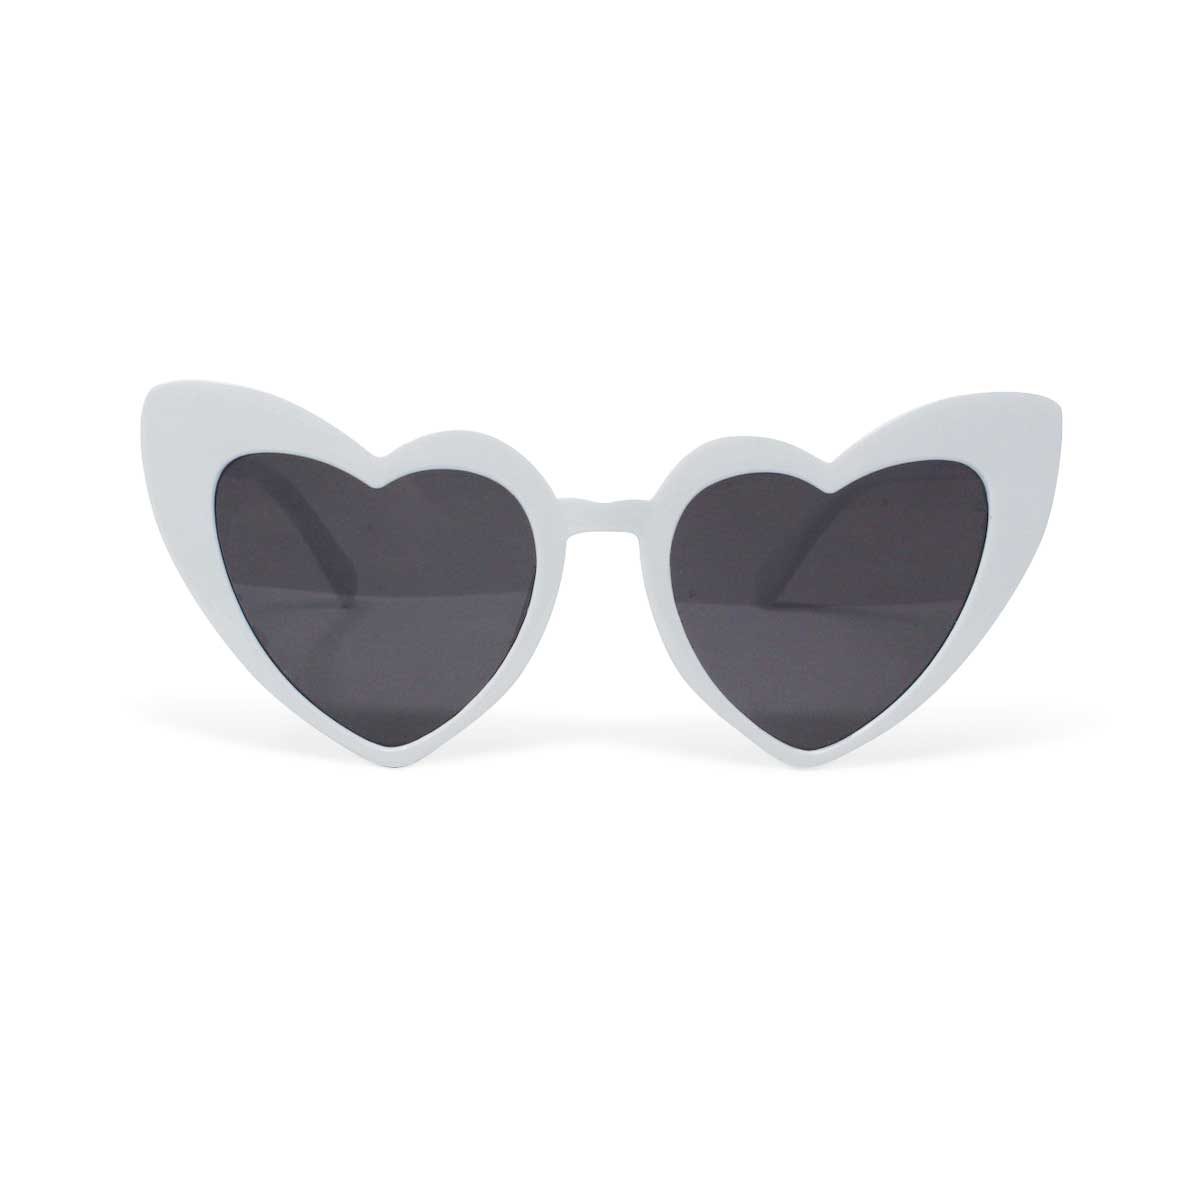 Retro Heart Shaped Sunglasses - White